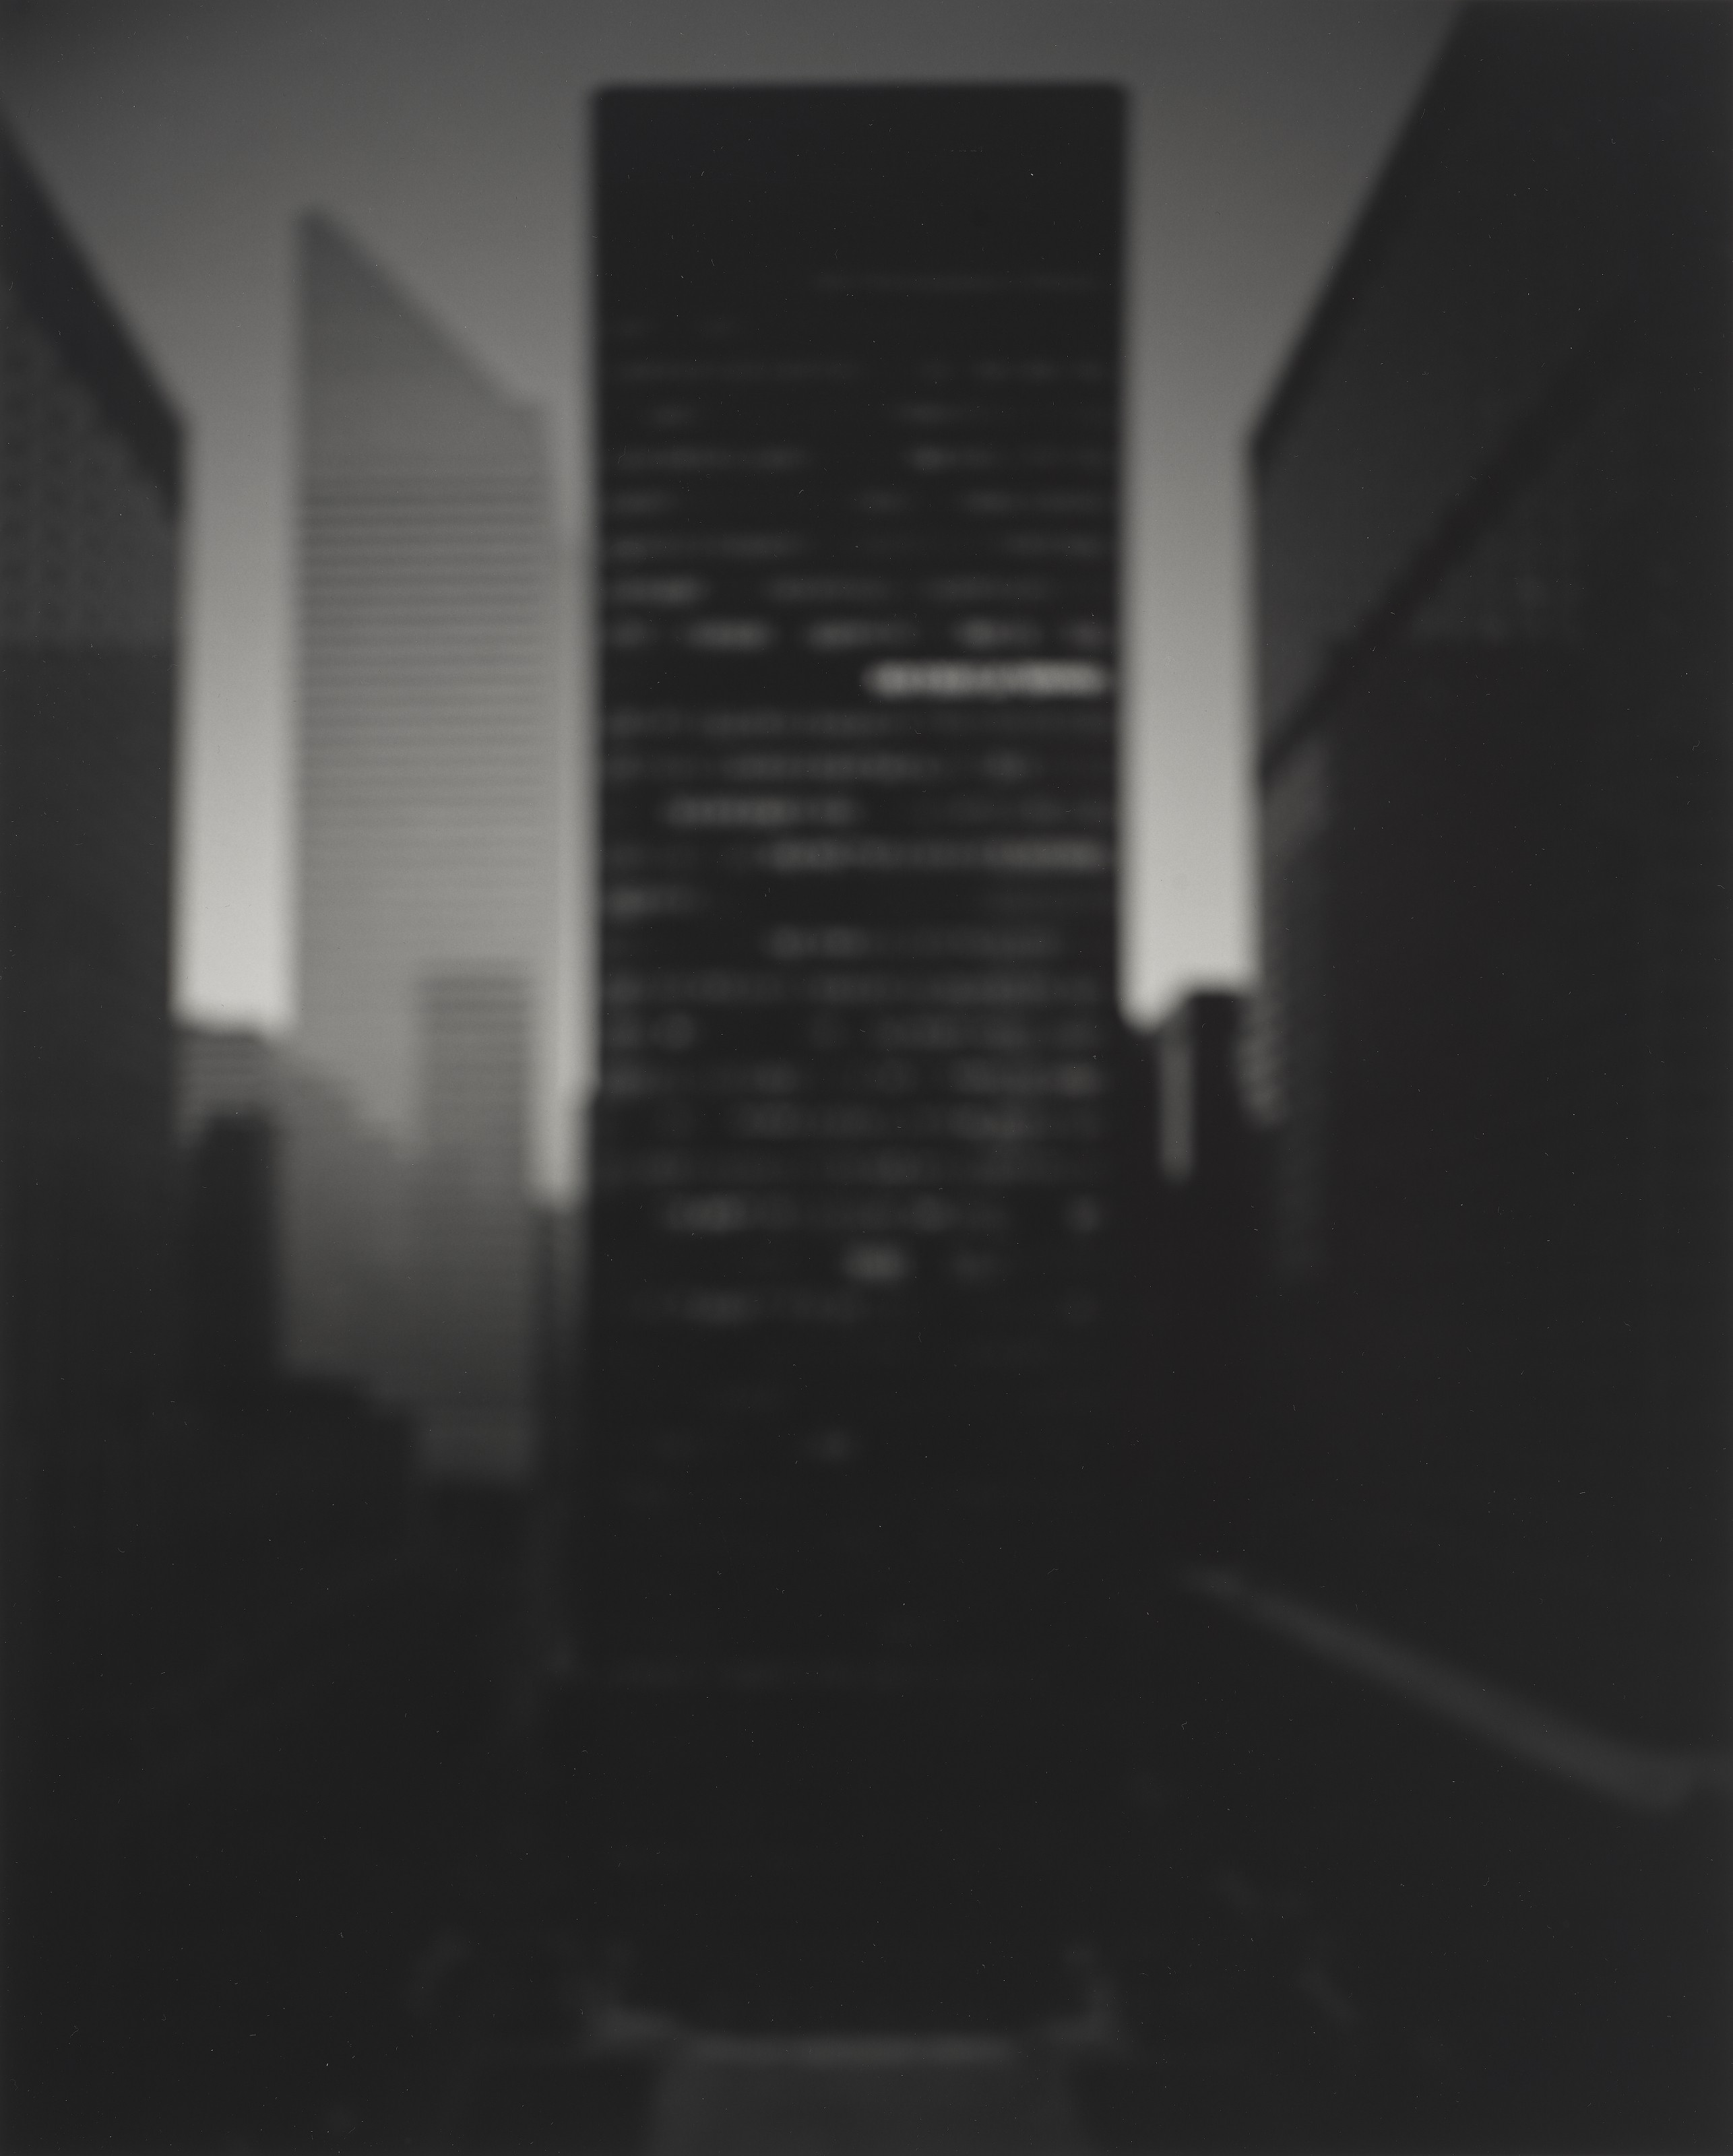 Hiroshi Sugimoto (b. 1948), Seagram Building–Ludwig Mies Van Der Rohe, 1997. Gelatin silver print, mounted on card. Image 23 x 18½ in (58.4 x 46.9 cm). Sheet 23¾ x 19⅞ in (60.3 x 50.4 cm). Estimate $20,000-30,000. Offered in Photographs on 6 April 2021 at Christies in New York